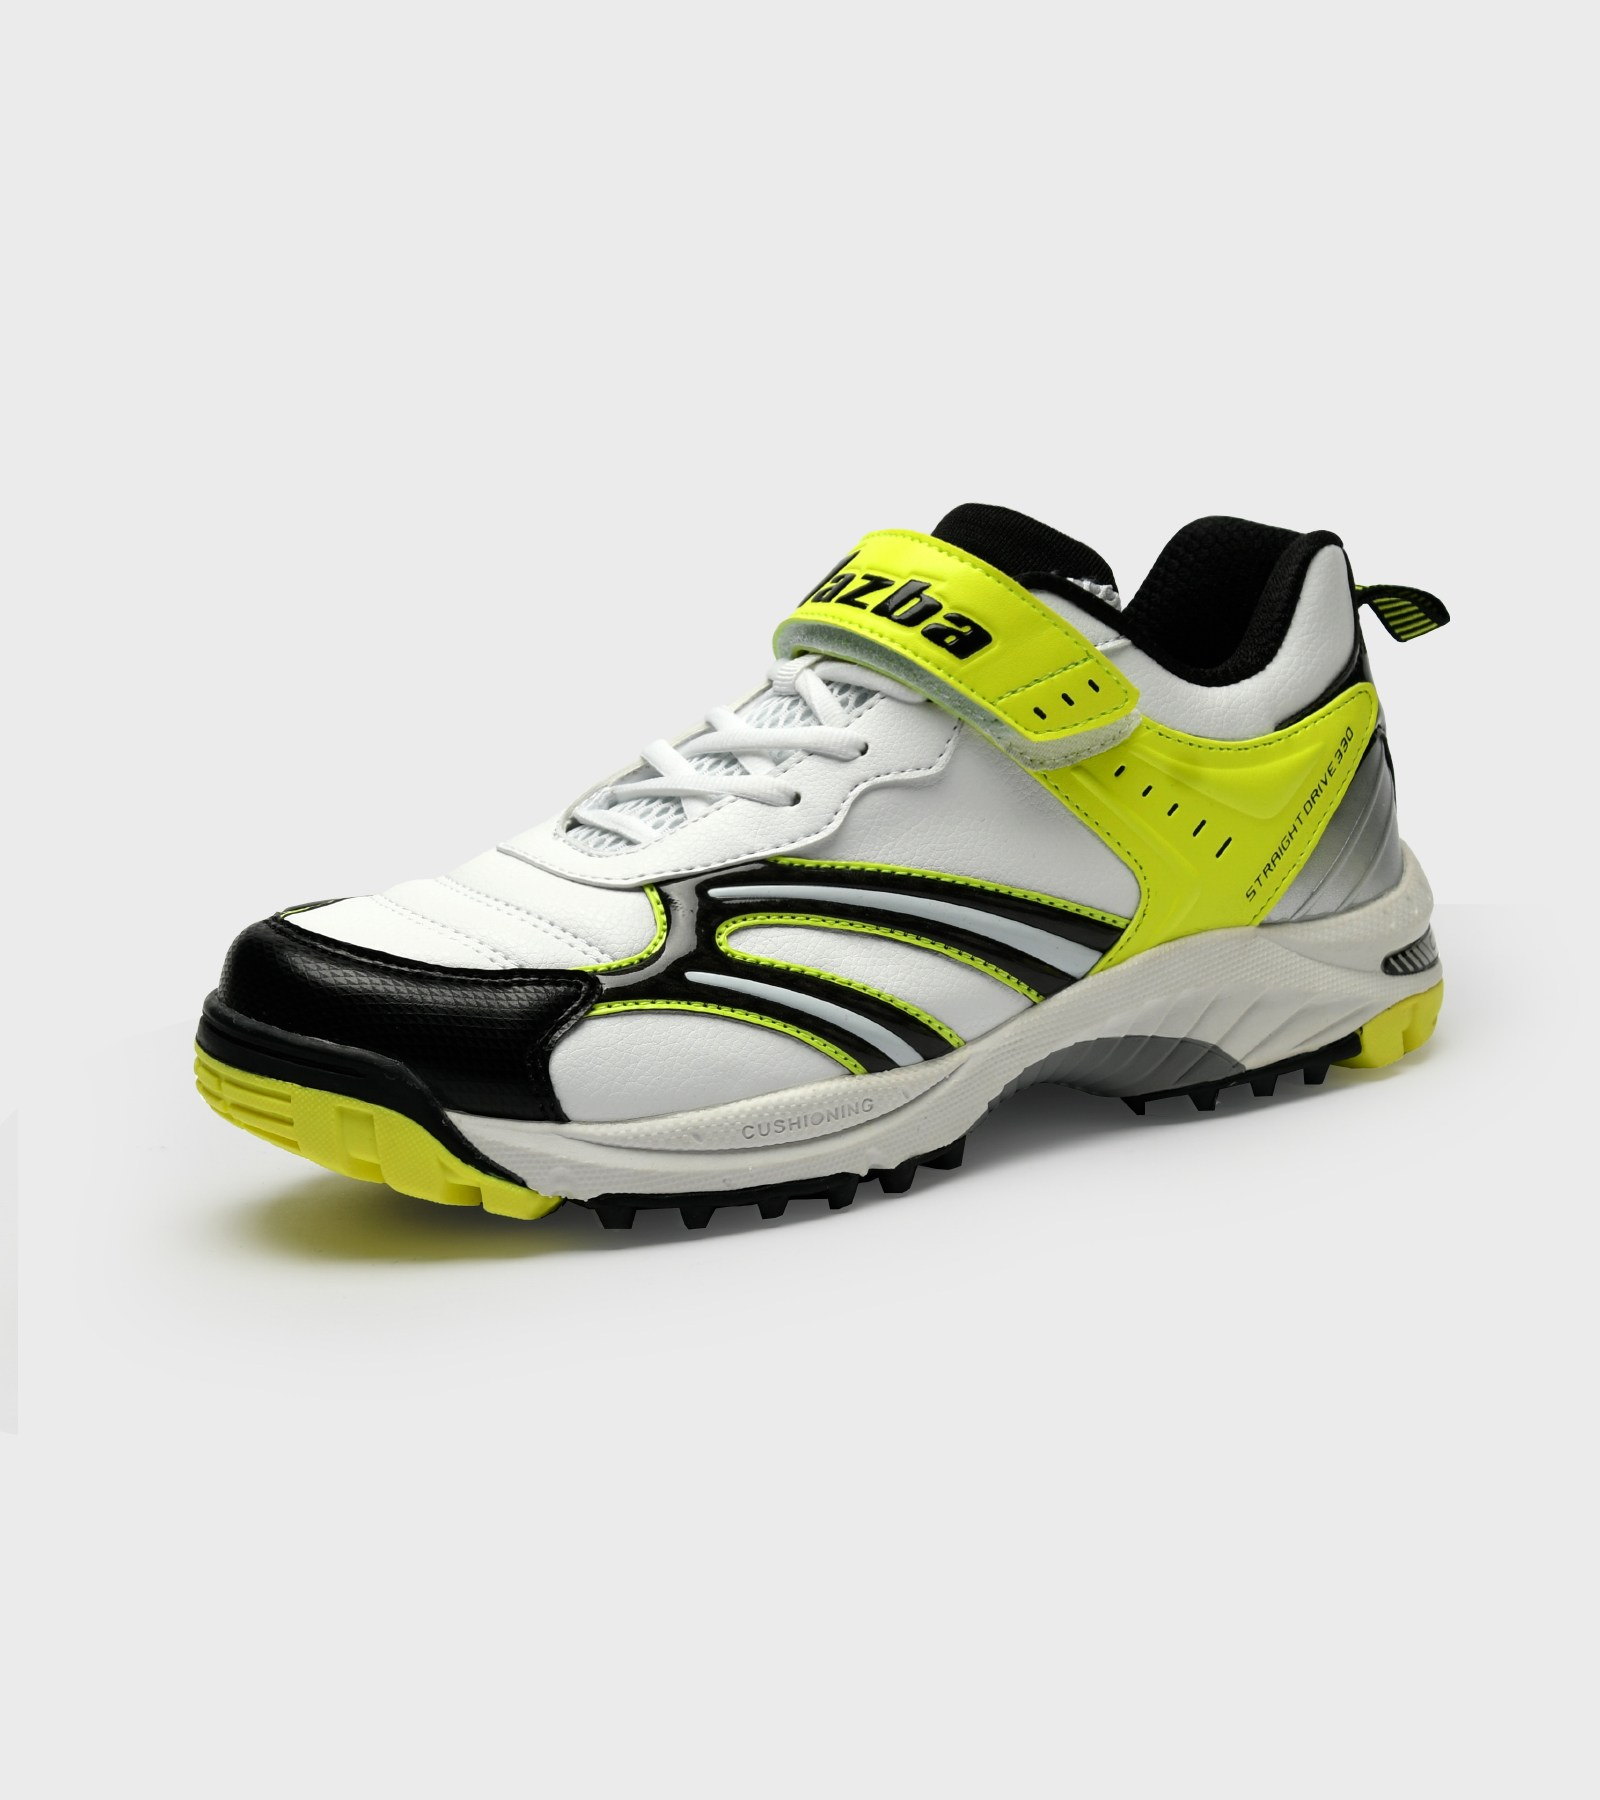 Jazba StraightDrive 330 Mens Cricket Shoes, Yellow ...